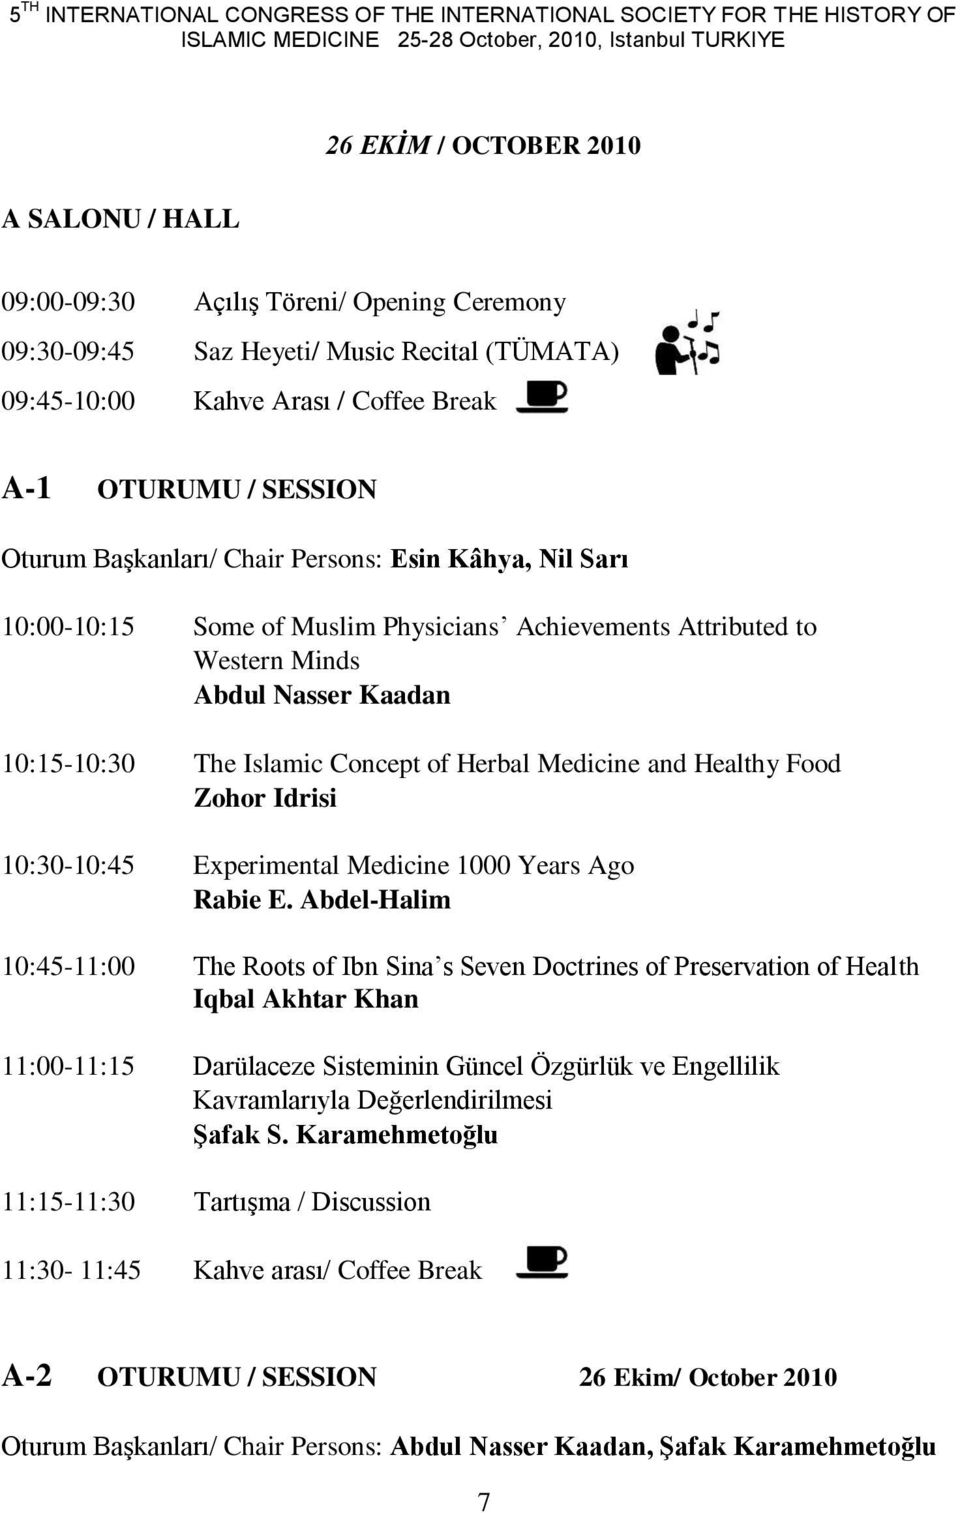 Muslim Physicians Achievements Attributed to Western Minds Abdul Nasser Kaadan 10:15-10:30 The Islamic Concept of Herbal Medicine and Healthy Food Zohor Idrisi 10:30-10:45 Experimental Medicine 1000